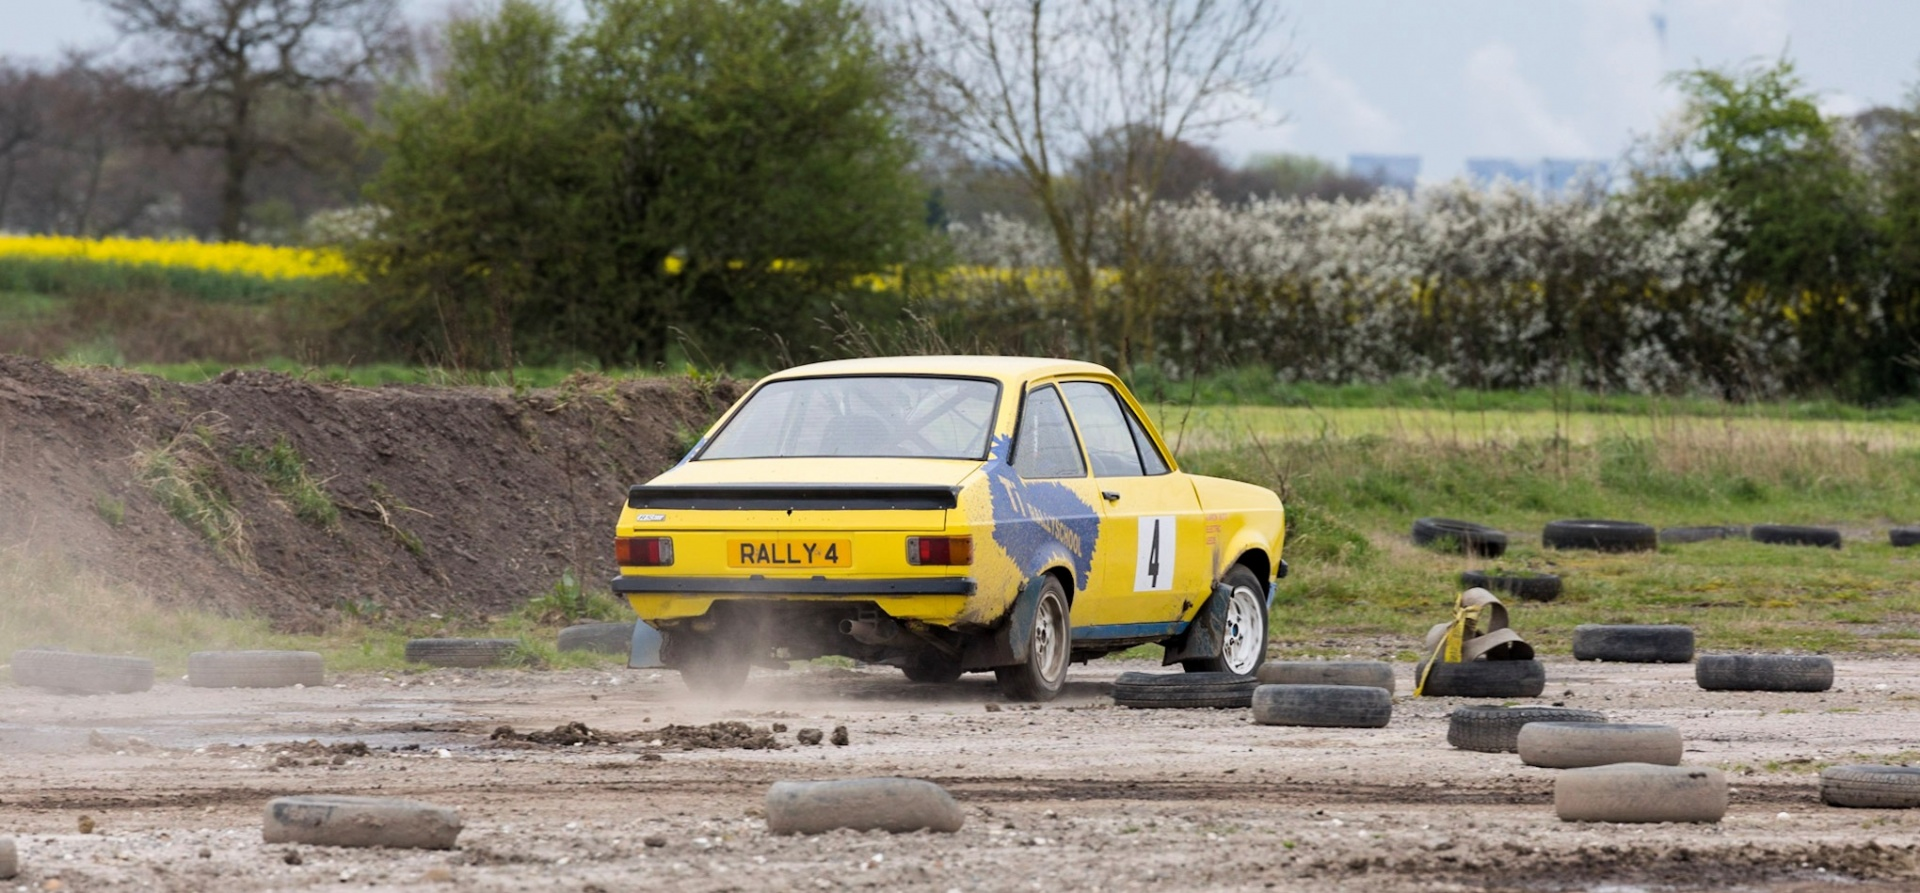 Full Day Rally Driving Introductory Experience in Yorkshire-3